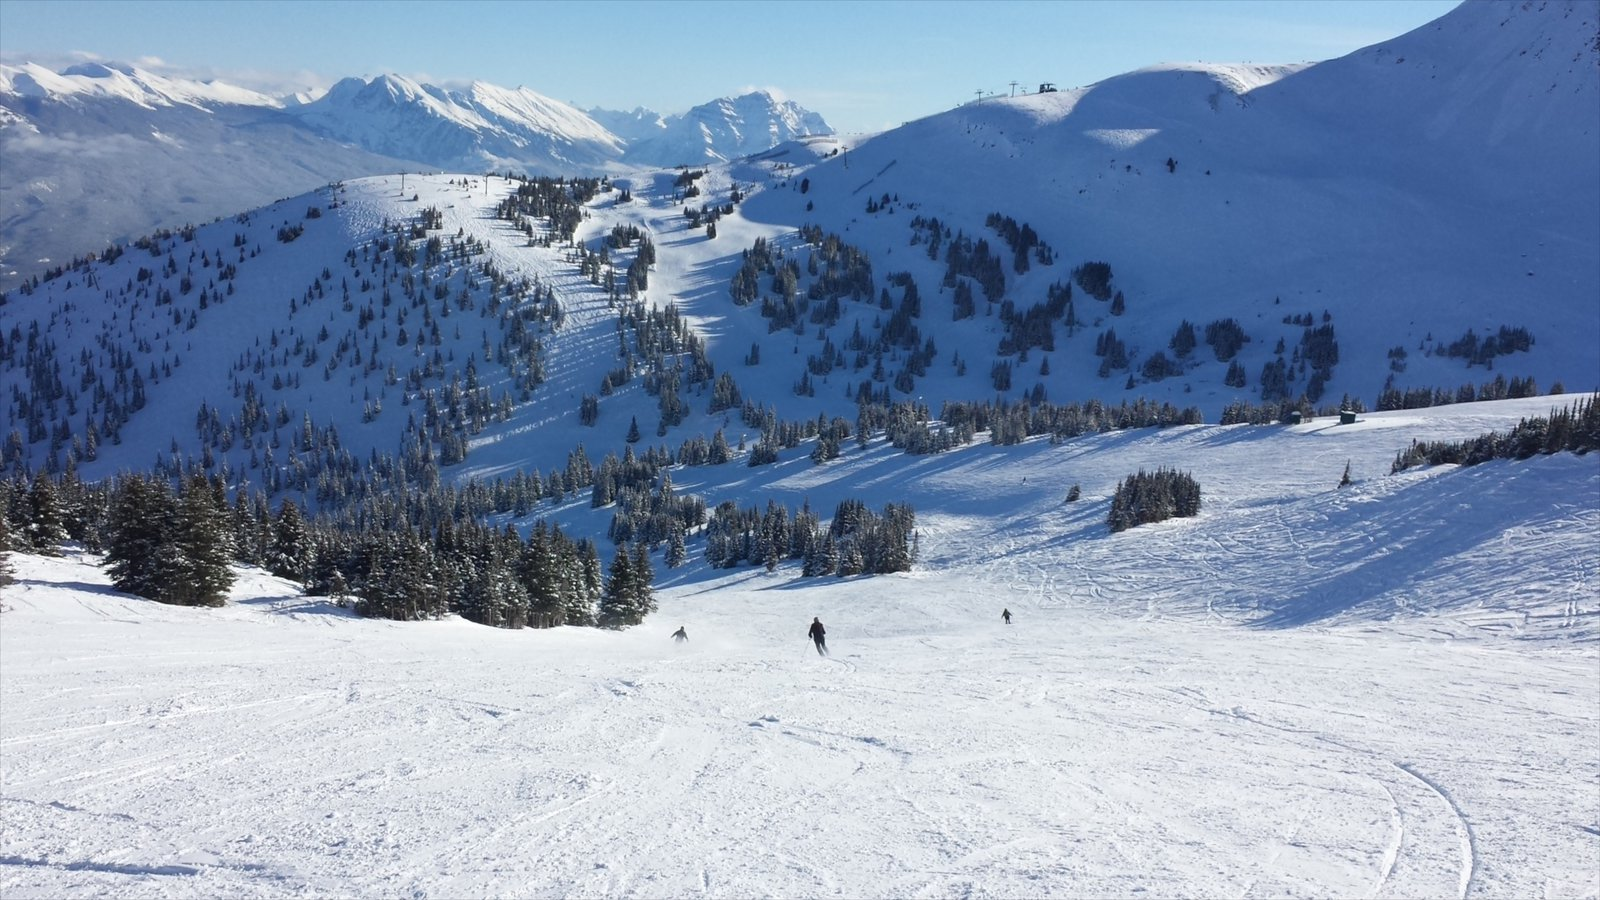 Marmot Basin showing mountains, snow and landscape views